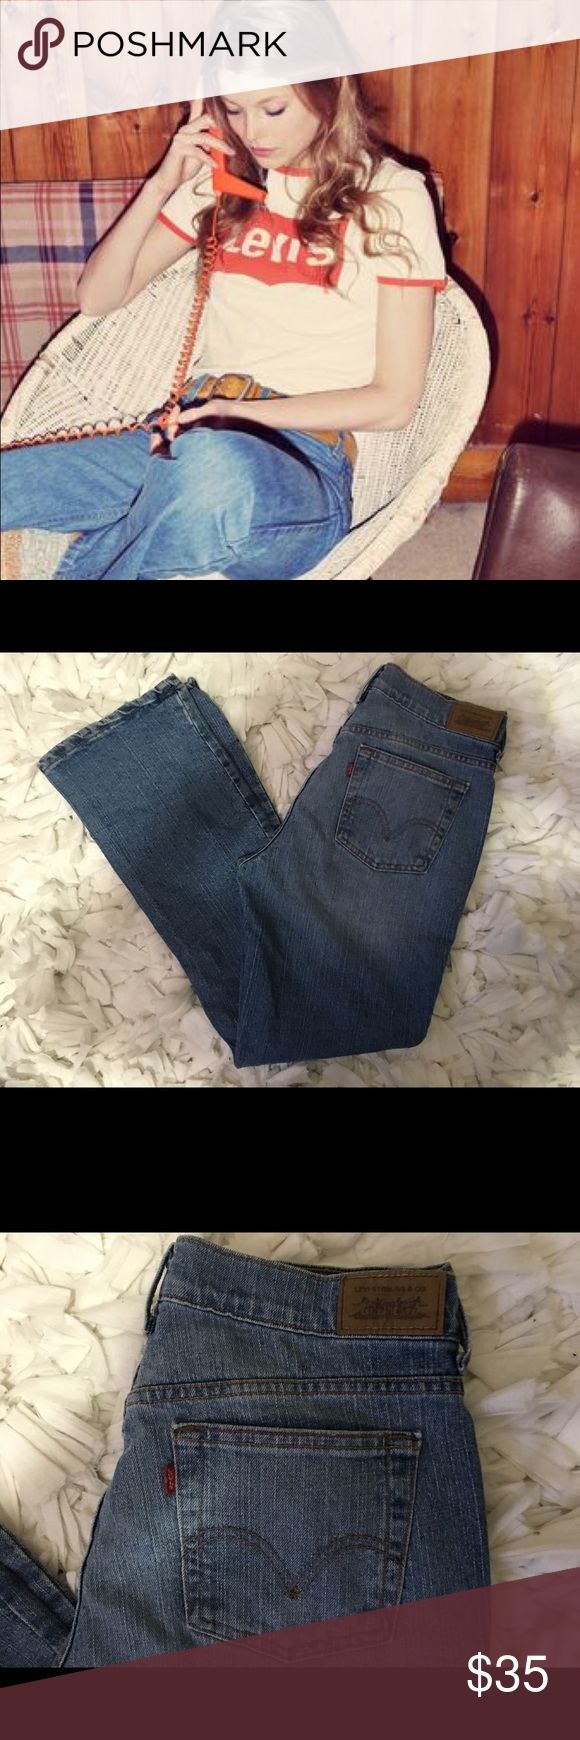 "Levis Levis jeans.  Style is 511.  Awesome orange & red stitching.  Tag reads 8M.  Measurements are 31 waist 31 inseam & 10""rise.  Gently worn.  Super comfy!!! Levi's Jeans Boot Cut"